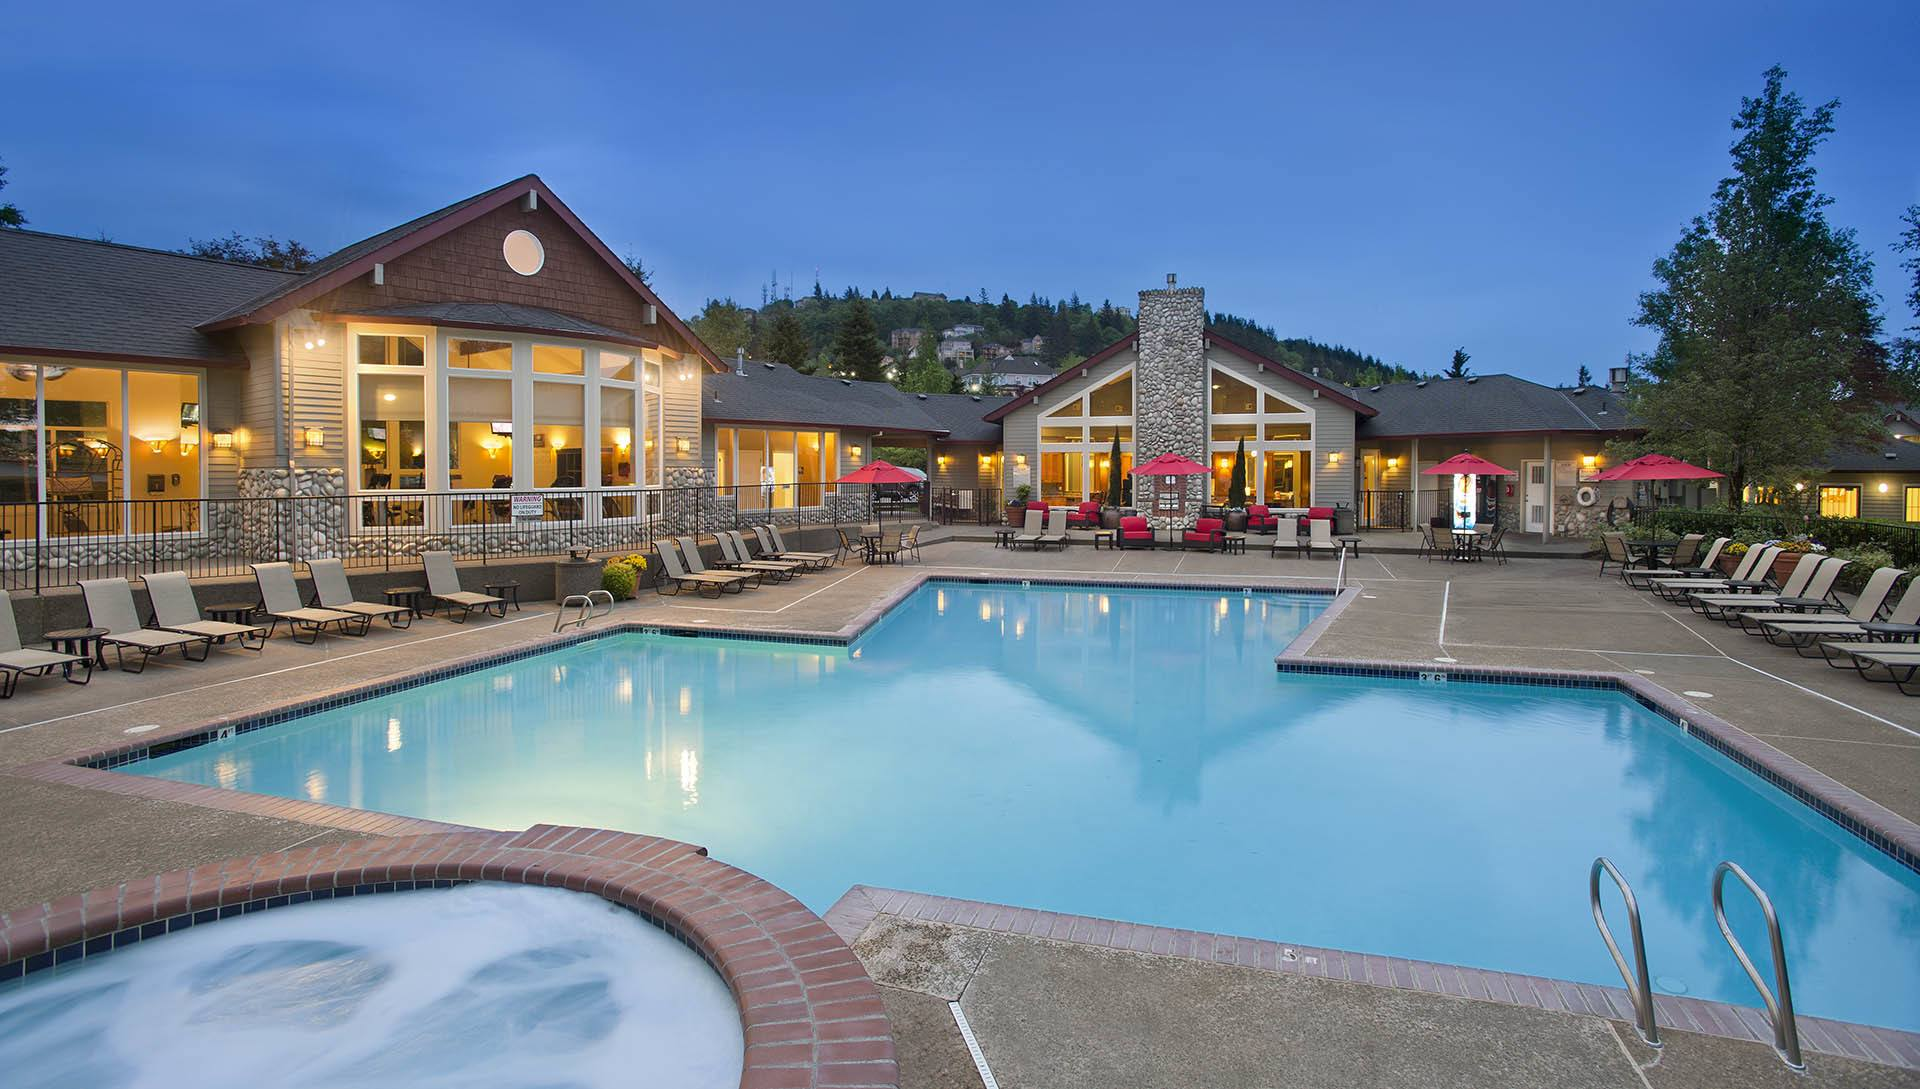 Apartments in Happy Valley, OR